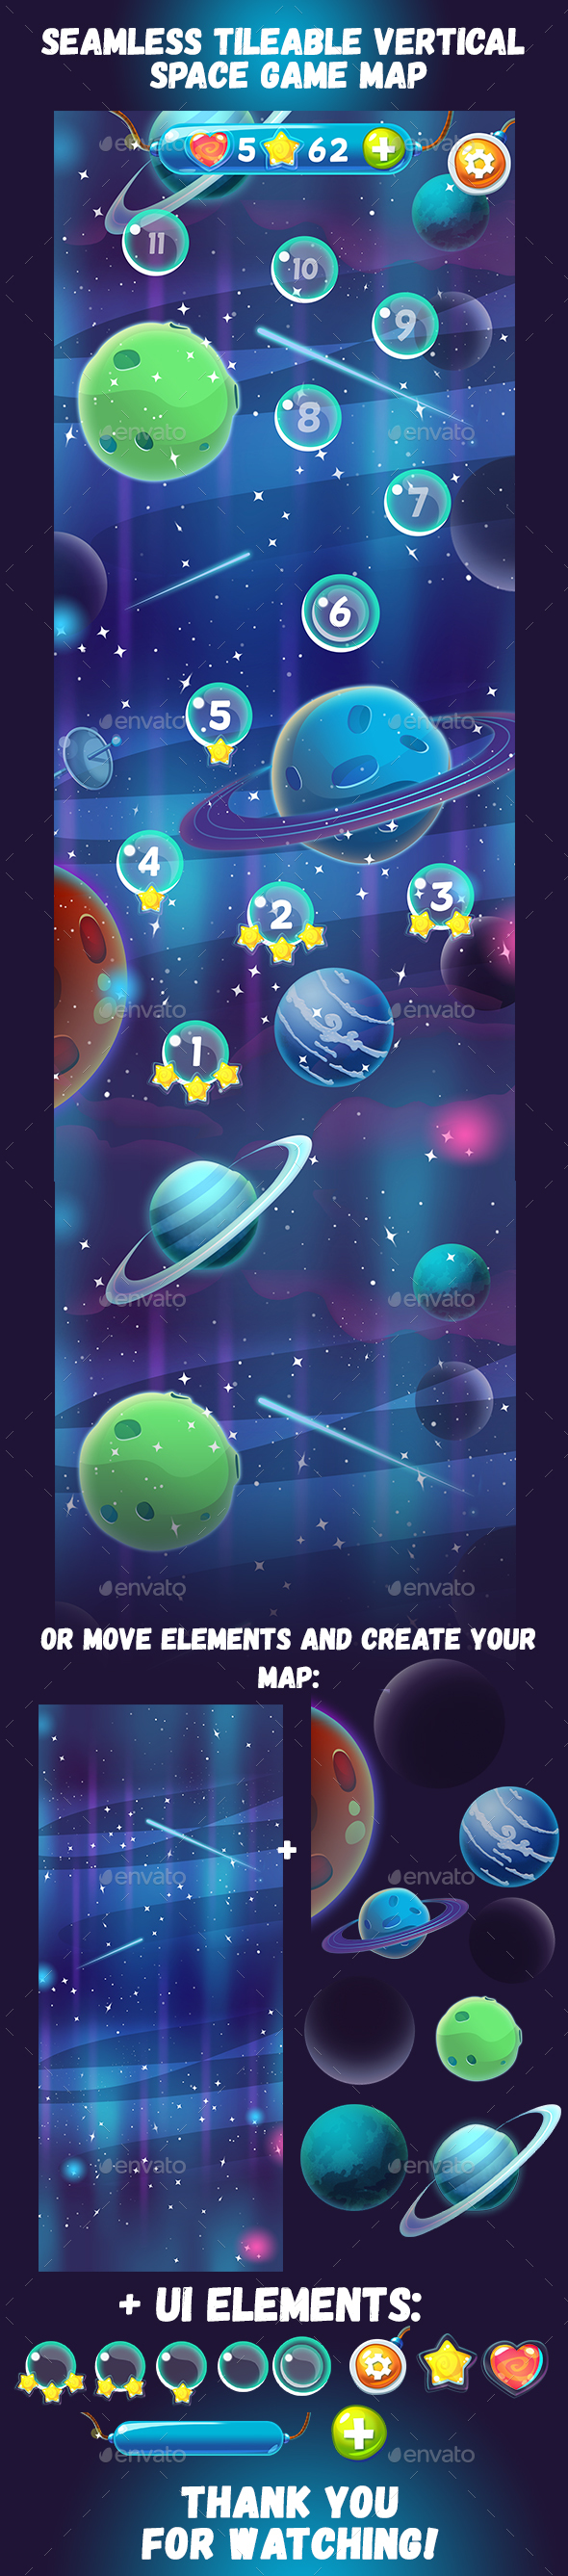 Seamless Vertical Space Game Map - Miscellaneous Game Assets